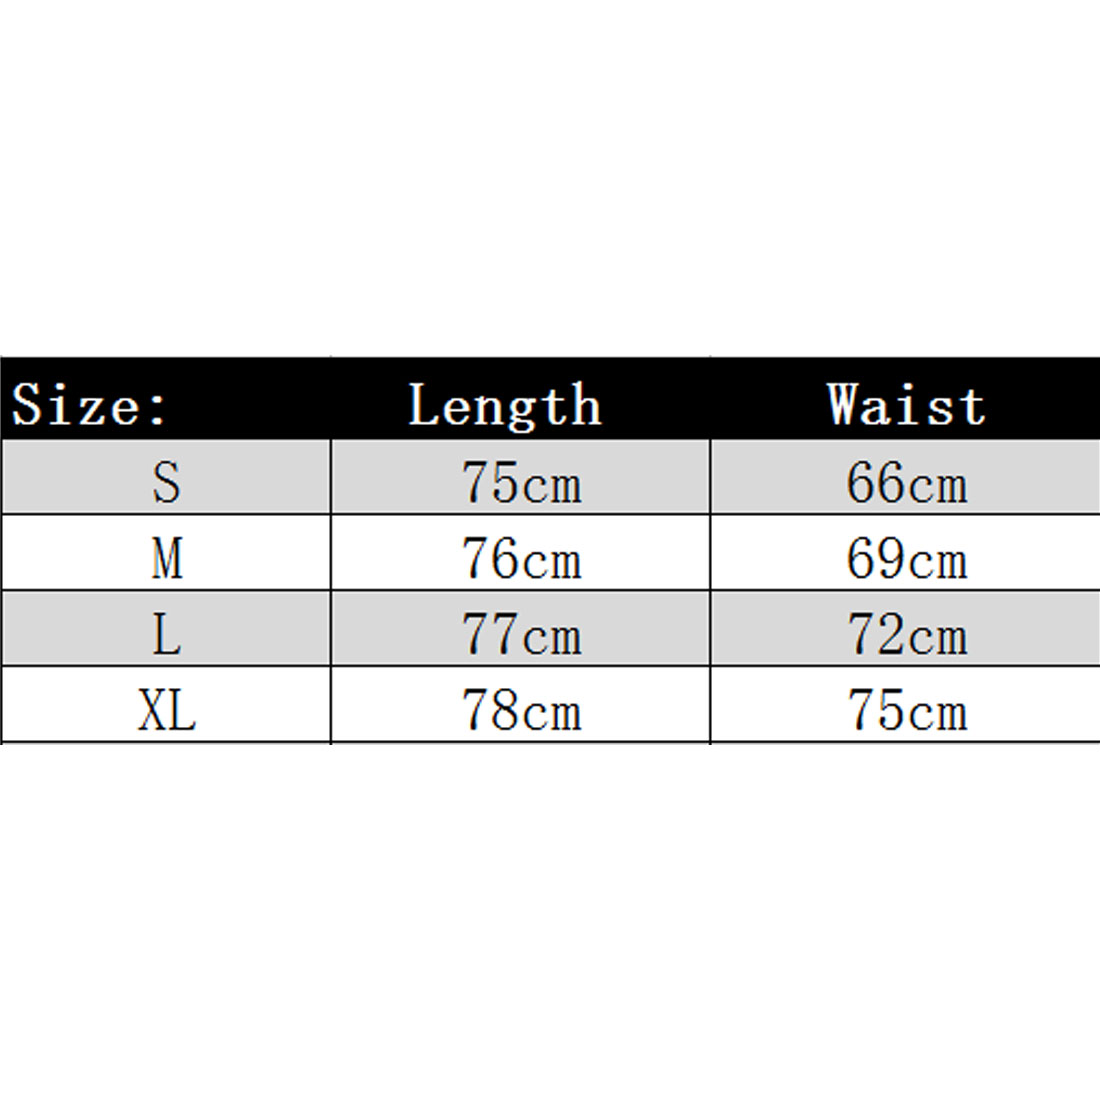 1Pcs Sexy Sequined Dresses Women Backless Halter Black Gold Mini Dress Party 2018 New Arrivals Tassel Summer Dress Club Wear in Dresses from Women 39 s Clothing